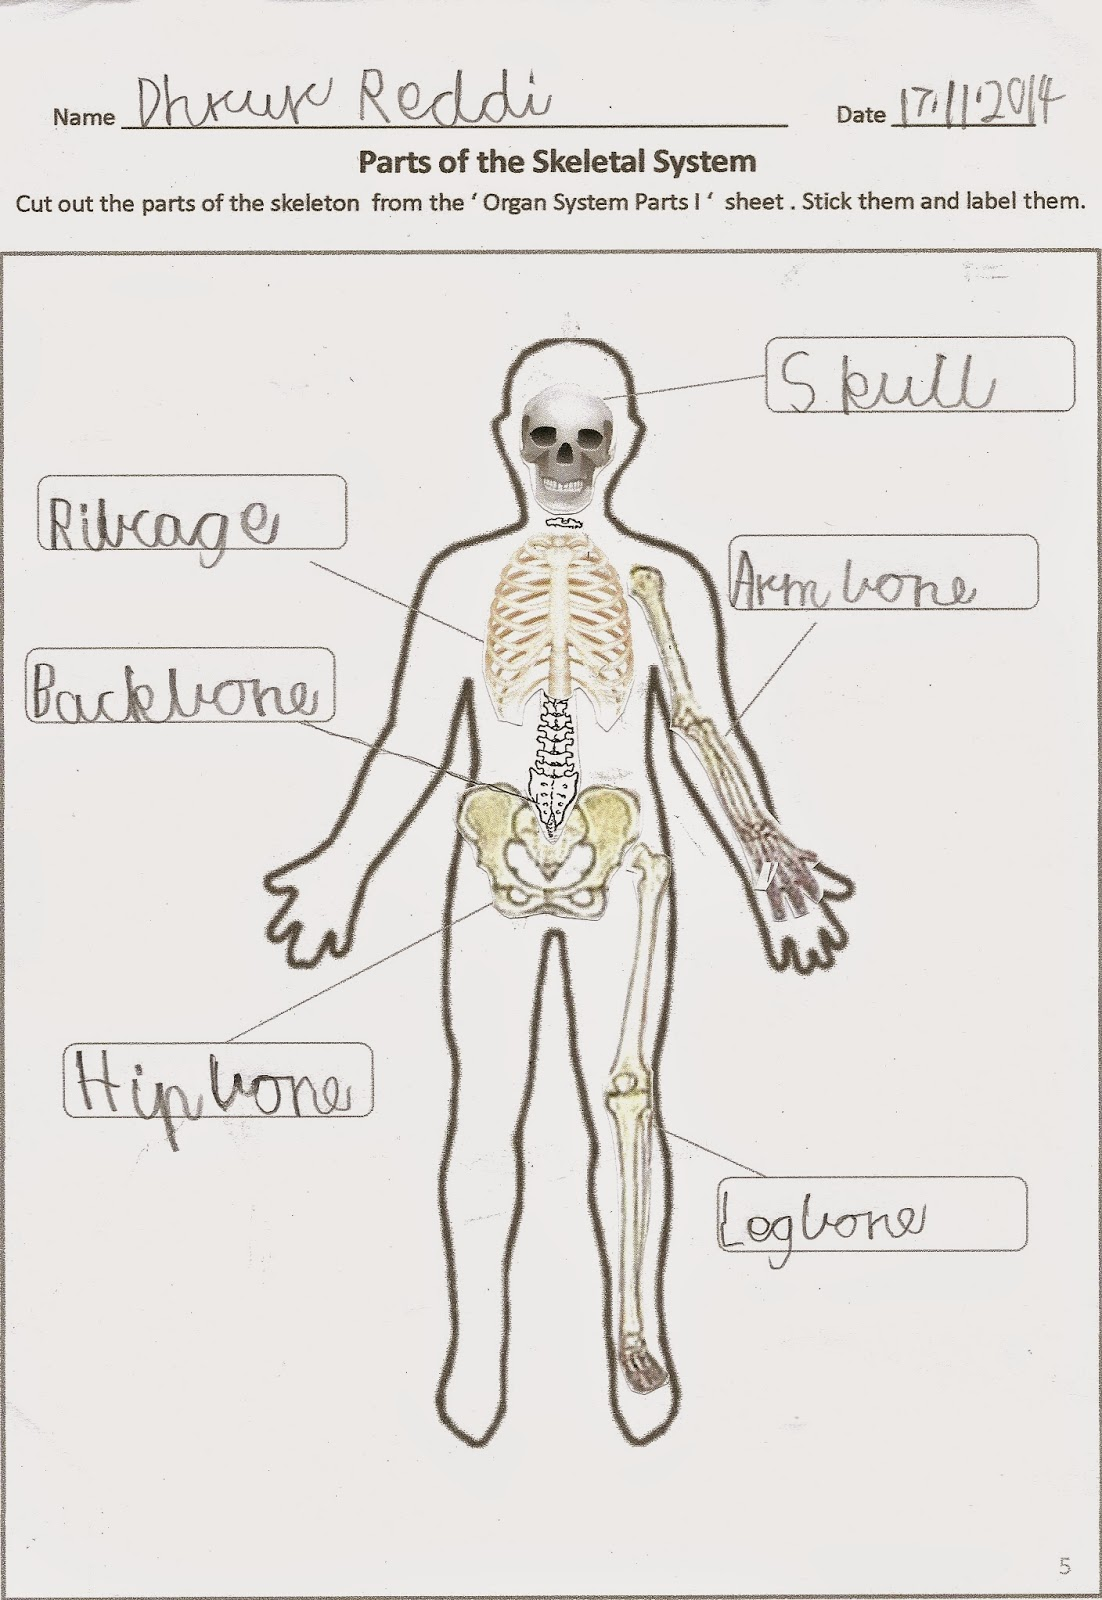 Skeletal System Cut & Paste Worksheet for grade 3 & 4